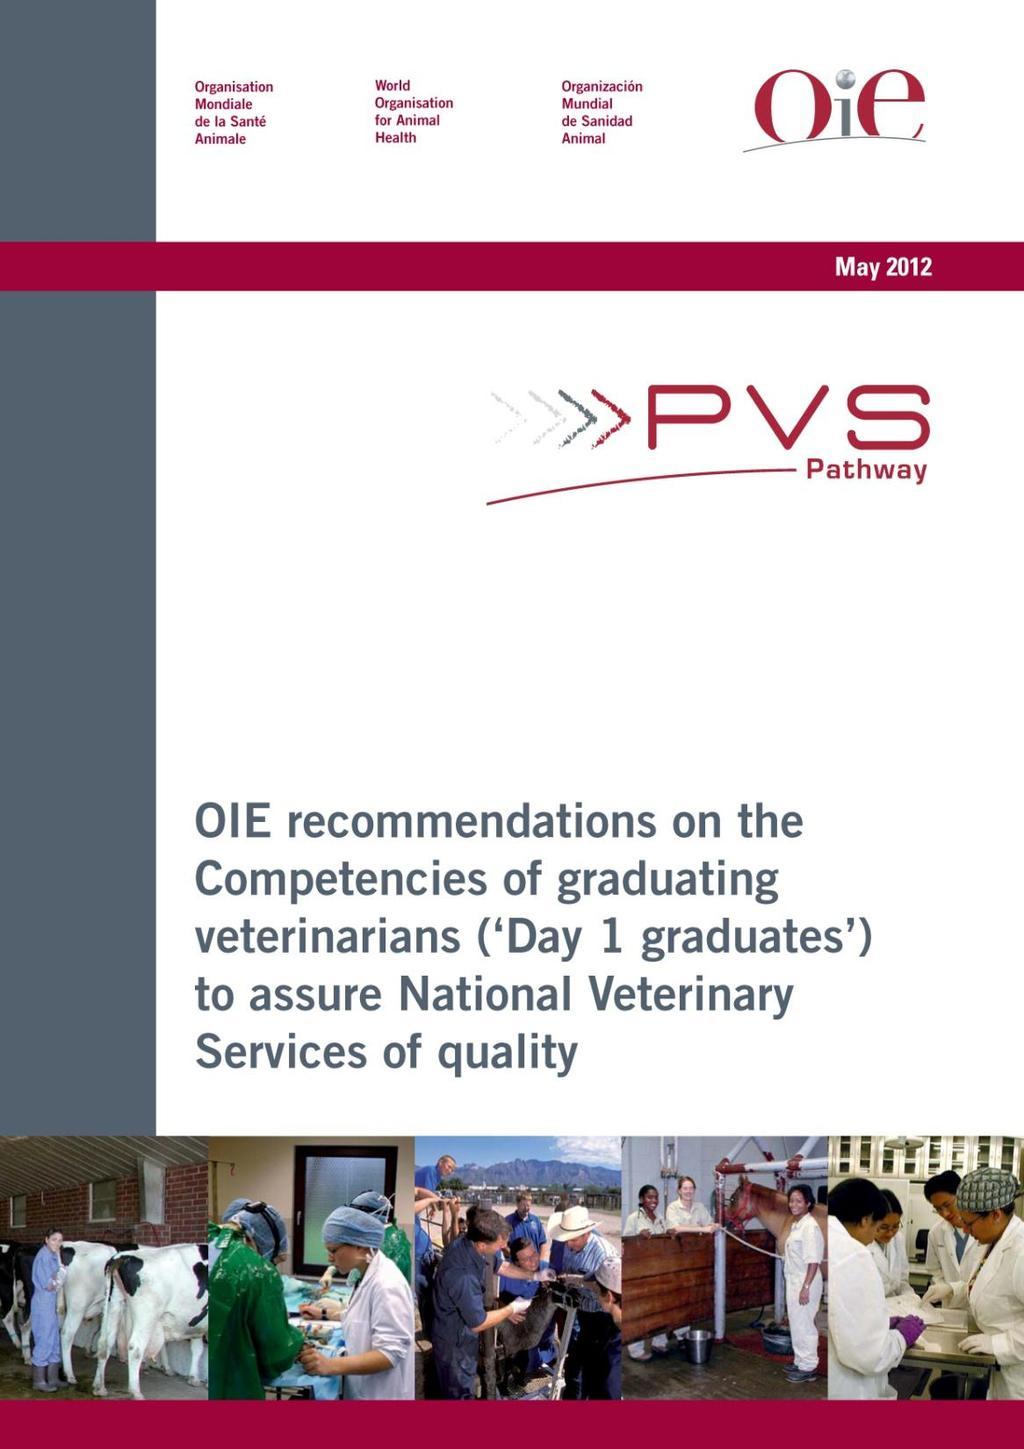 ...High quality veterinary education is of critical importance to efficient Veterinary Services and improving the